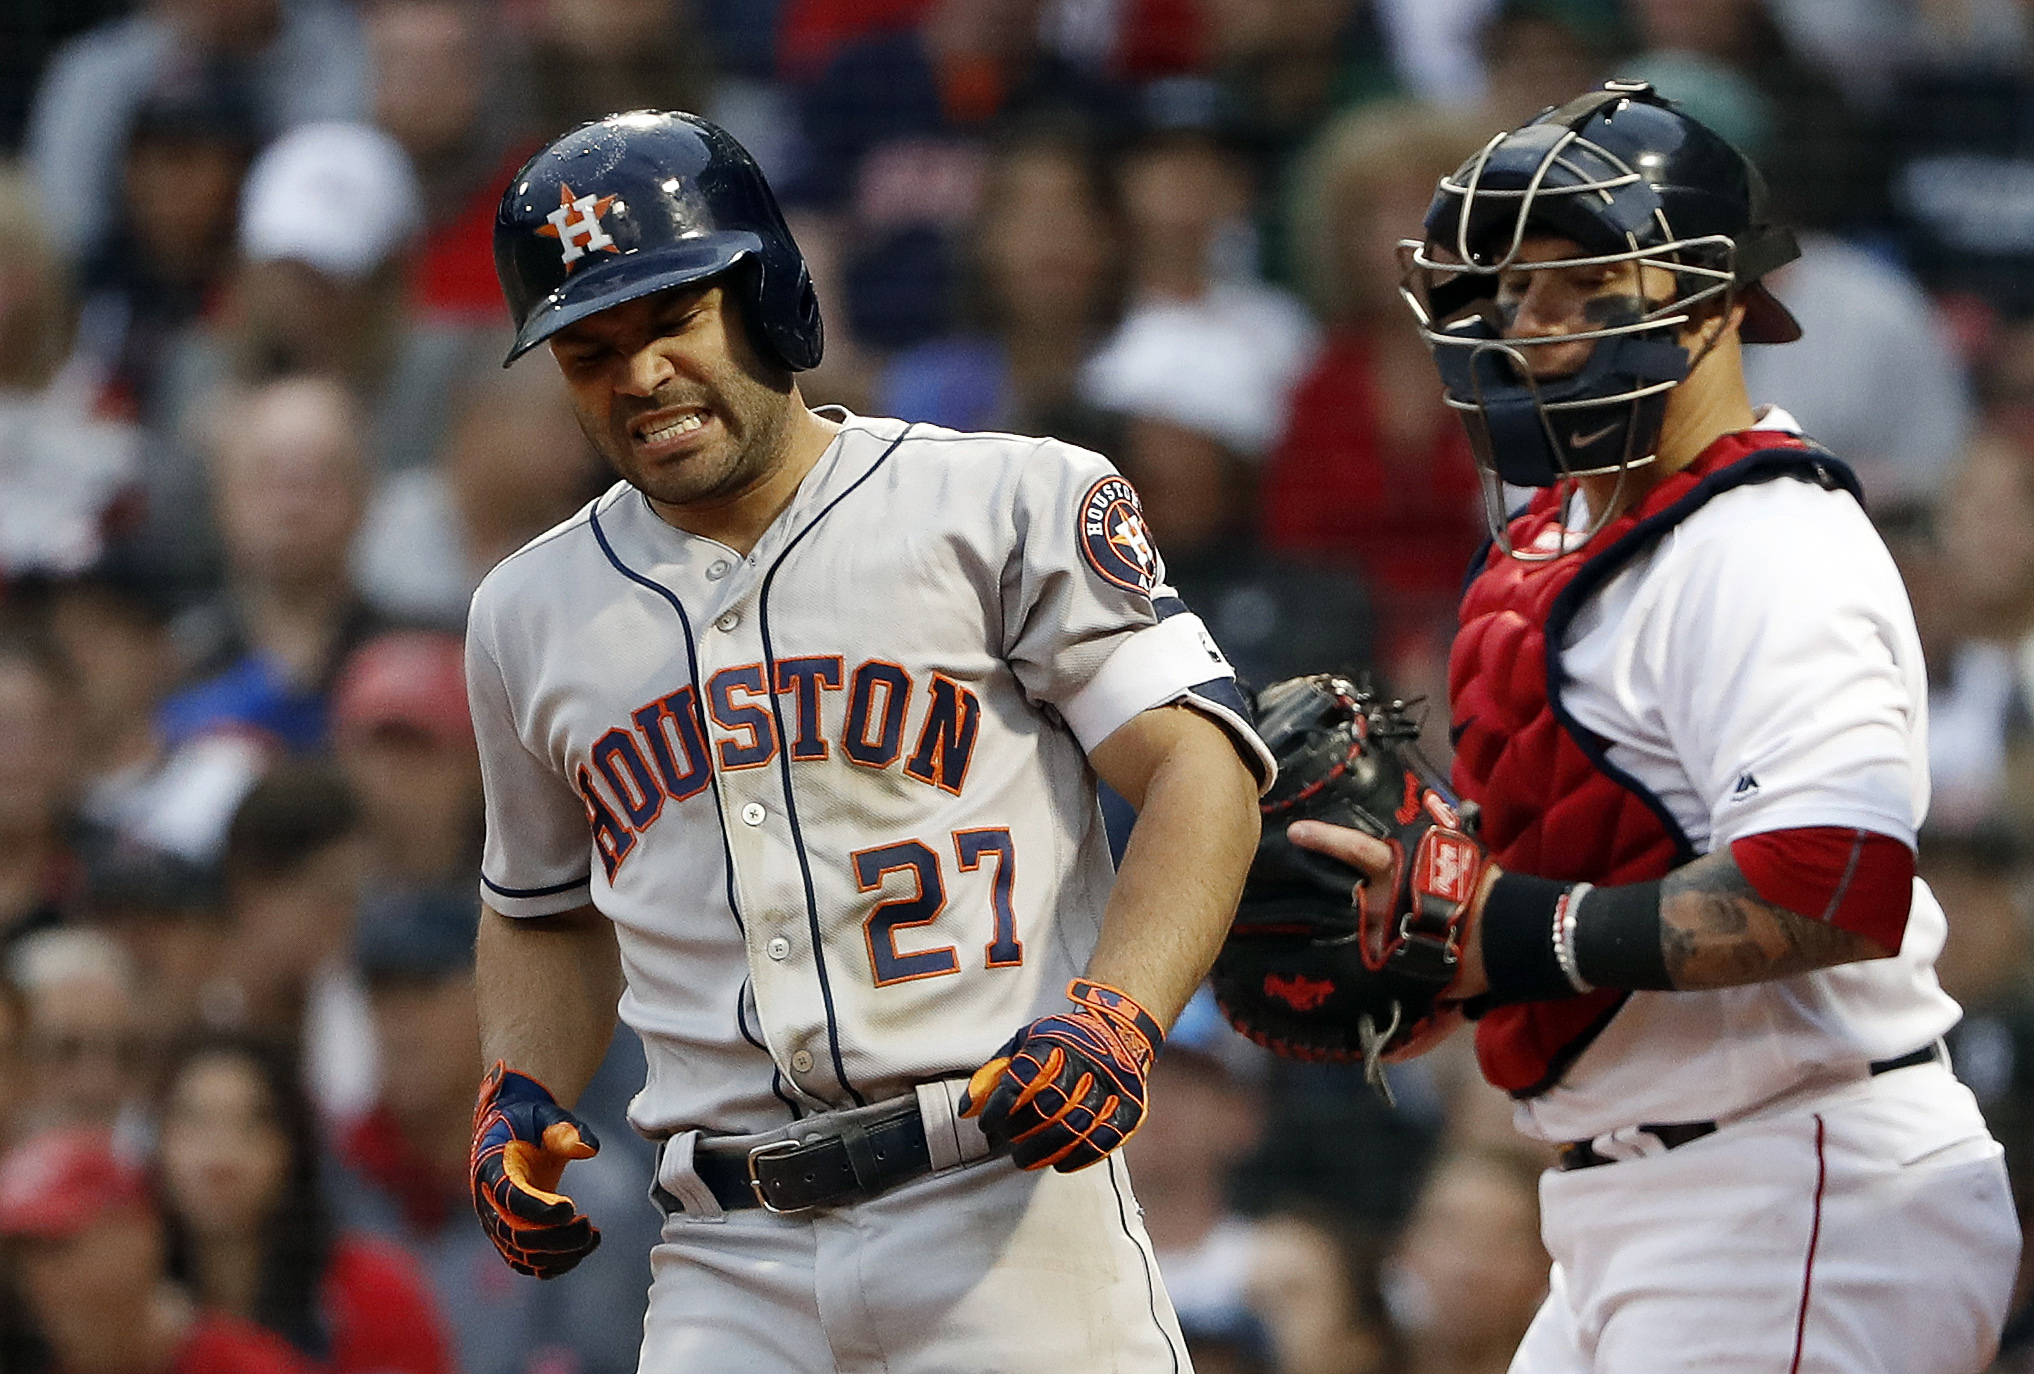 Houston Astros second baseman Jose Altuve grimaces after being hit by a pitch during the sixth inning as Boston Red Sox catcher Christian Vazquez looks on at Fenway Park.